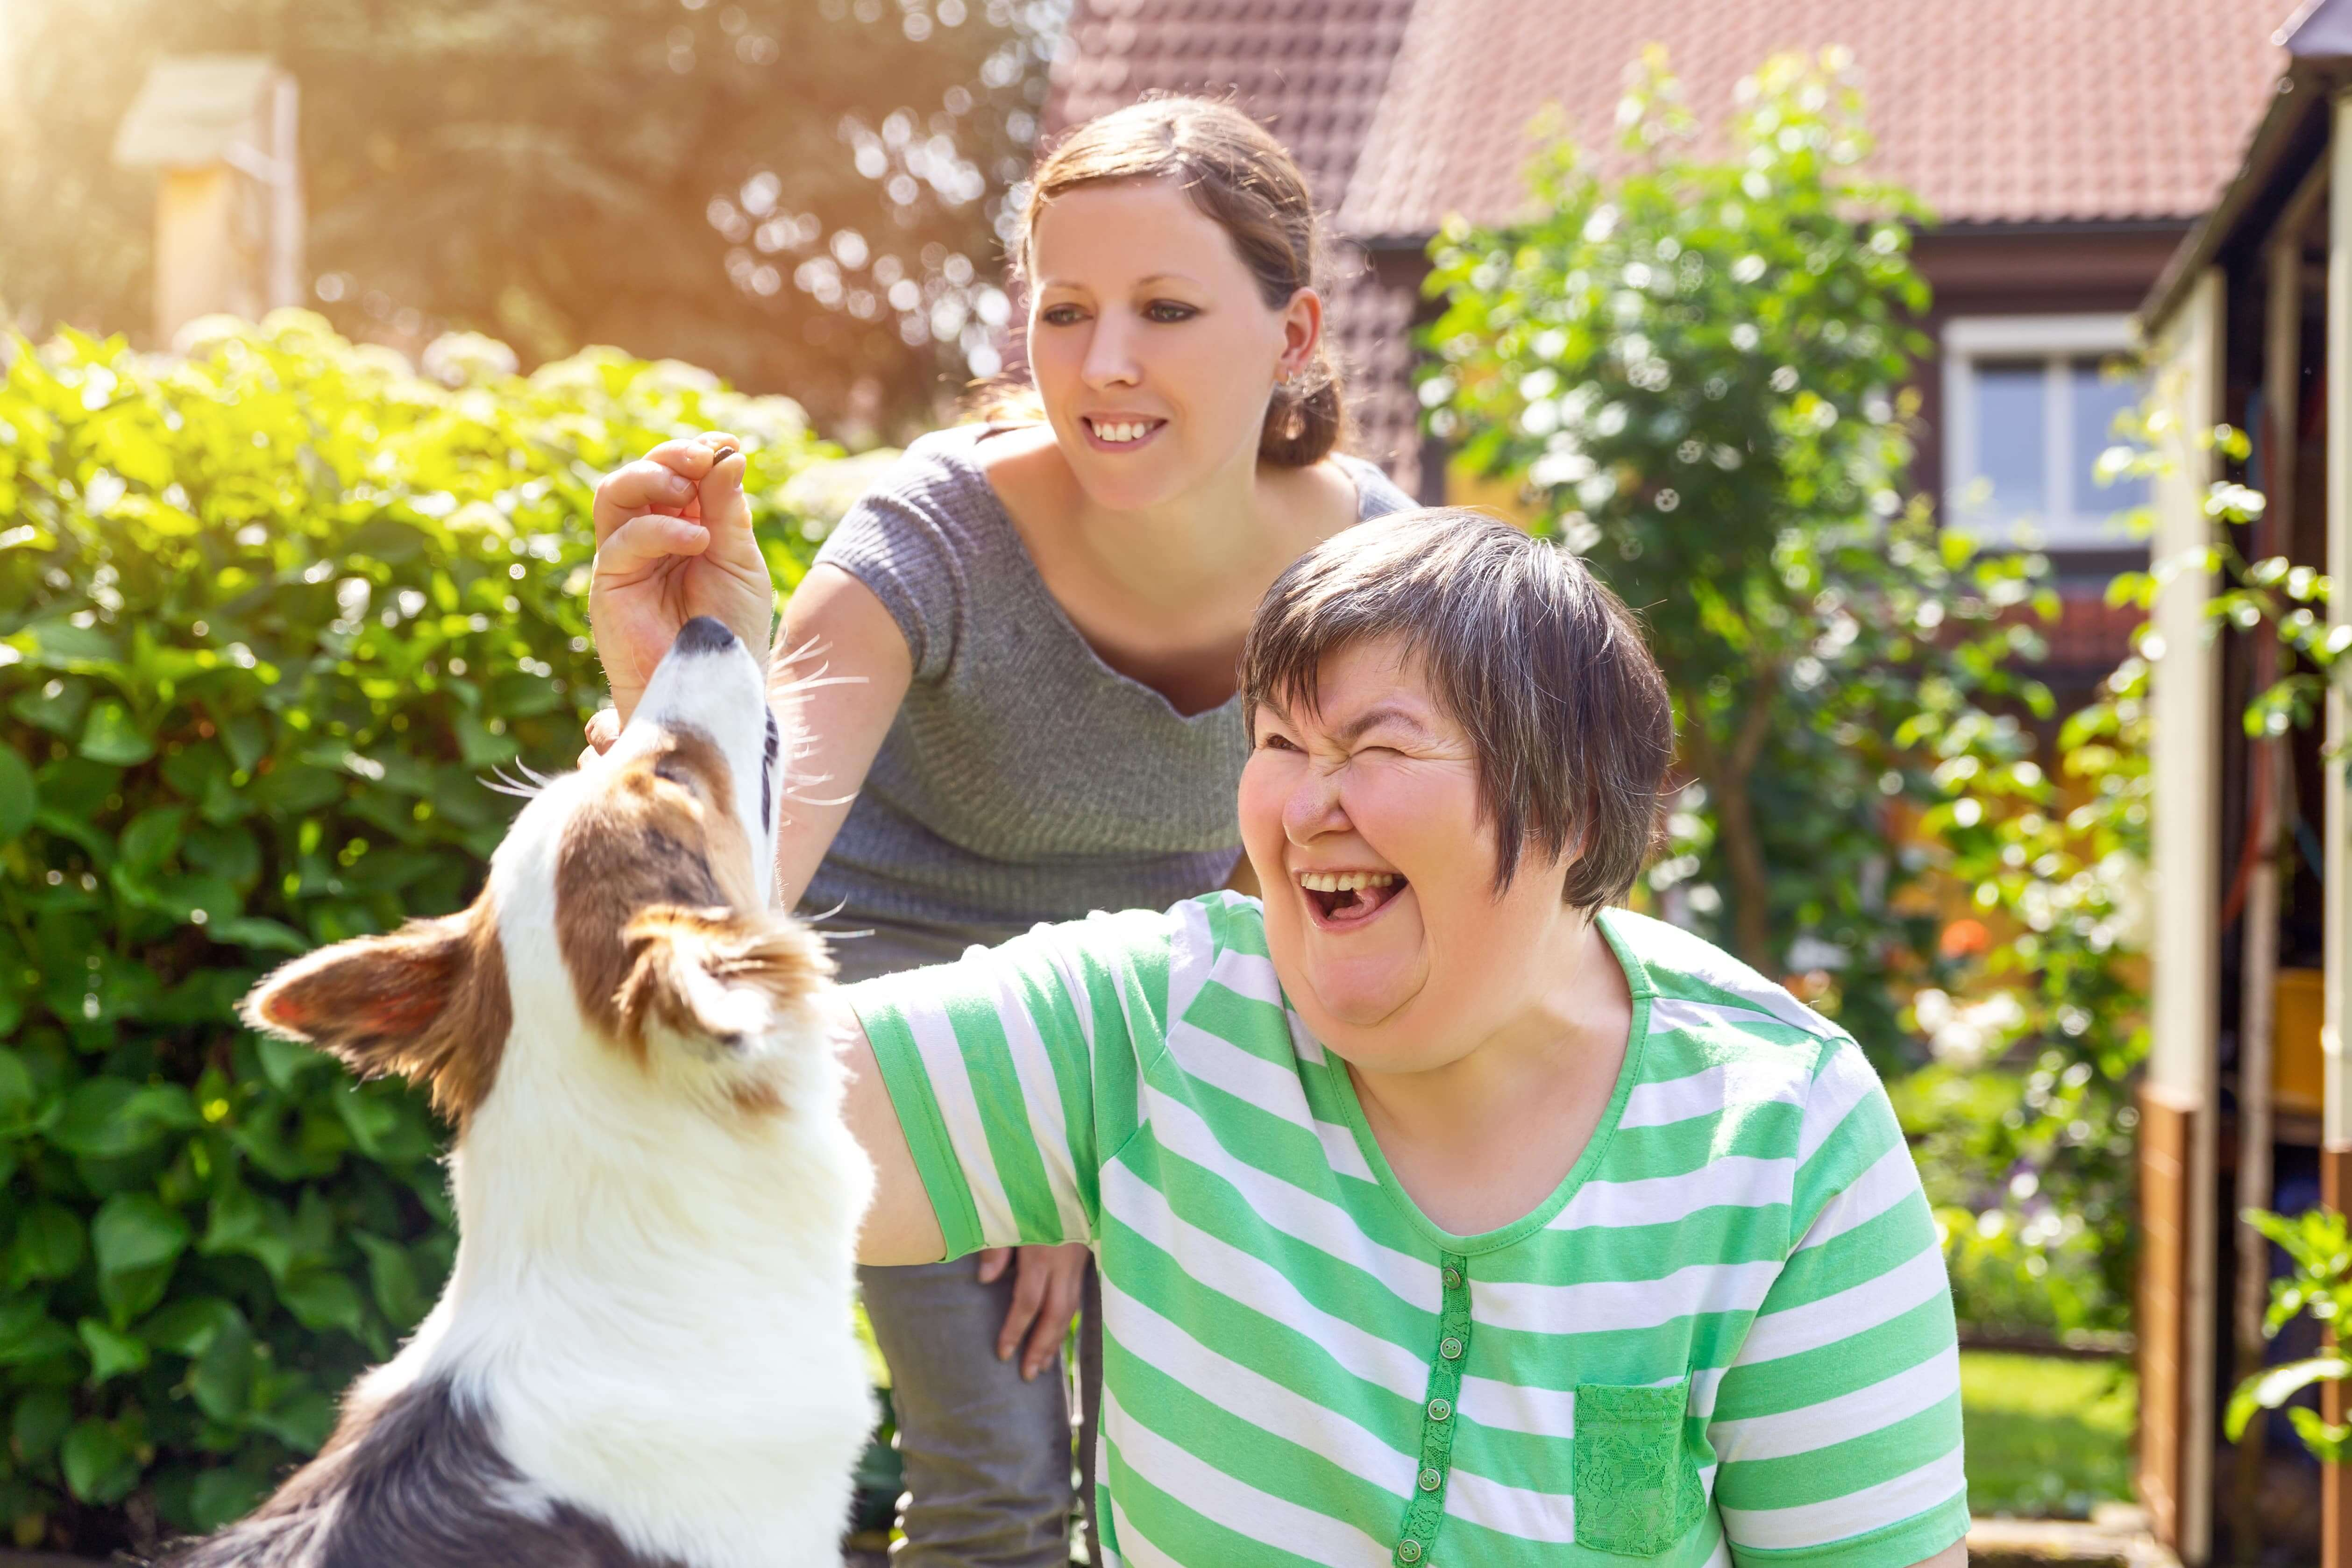 Disabled older woman playing in the backyard with her dog and younger woman